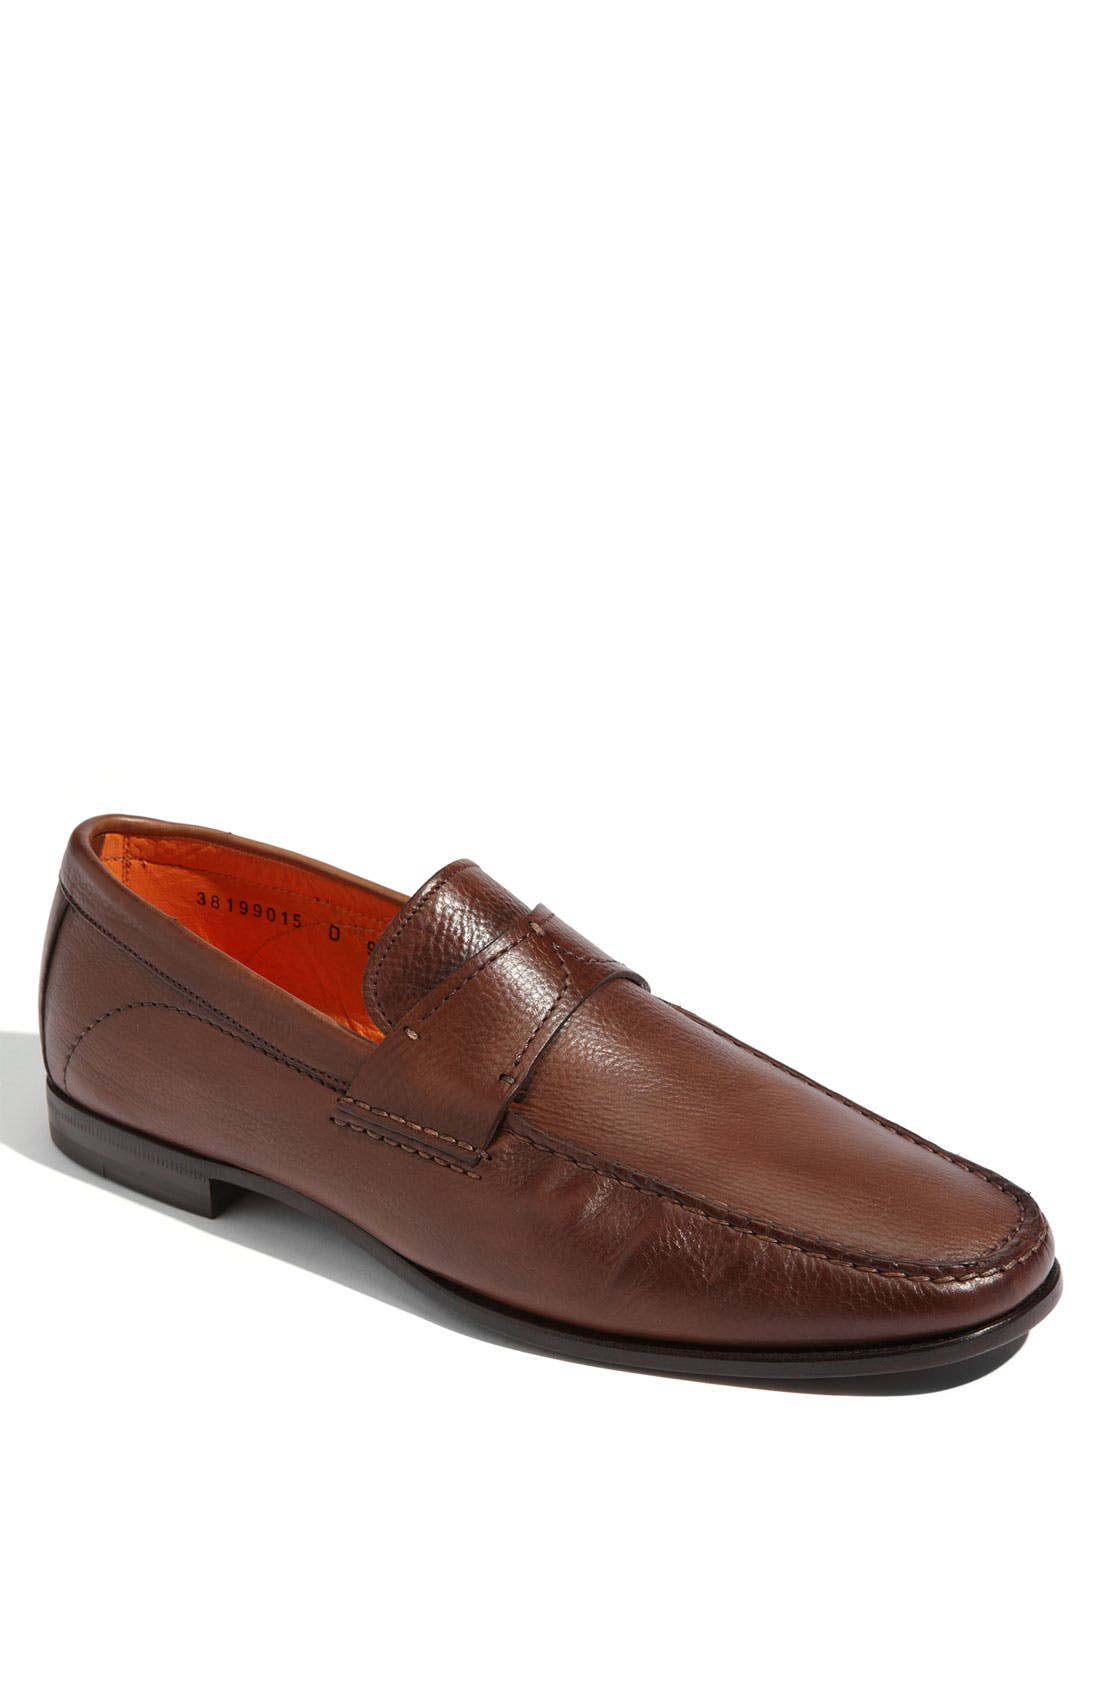 Alternate Image 1 Selected - Santoni 'Quest' Loafer (Men)